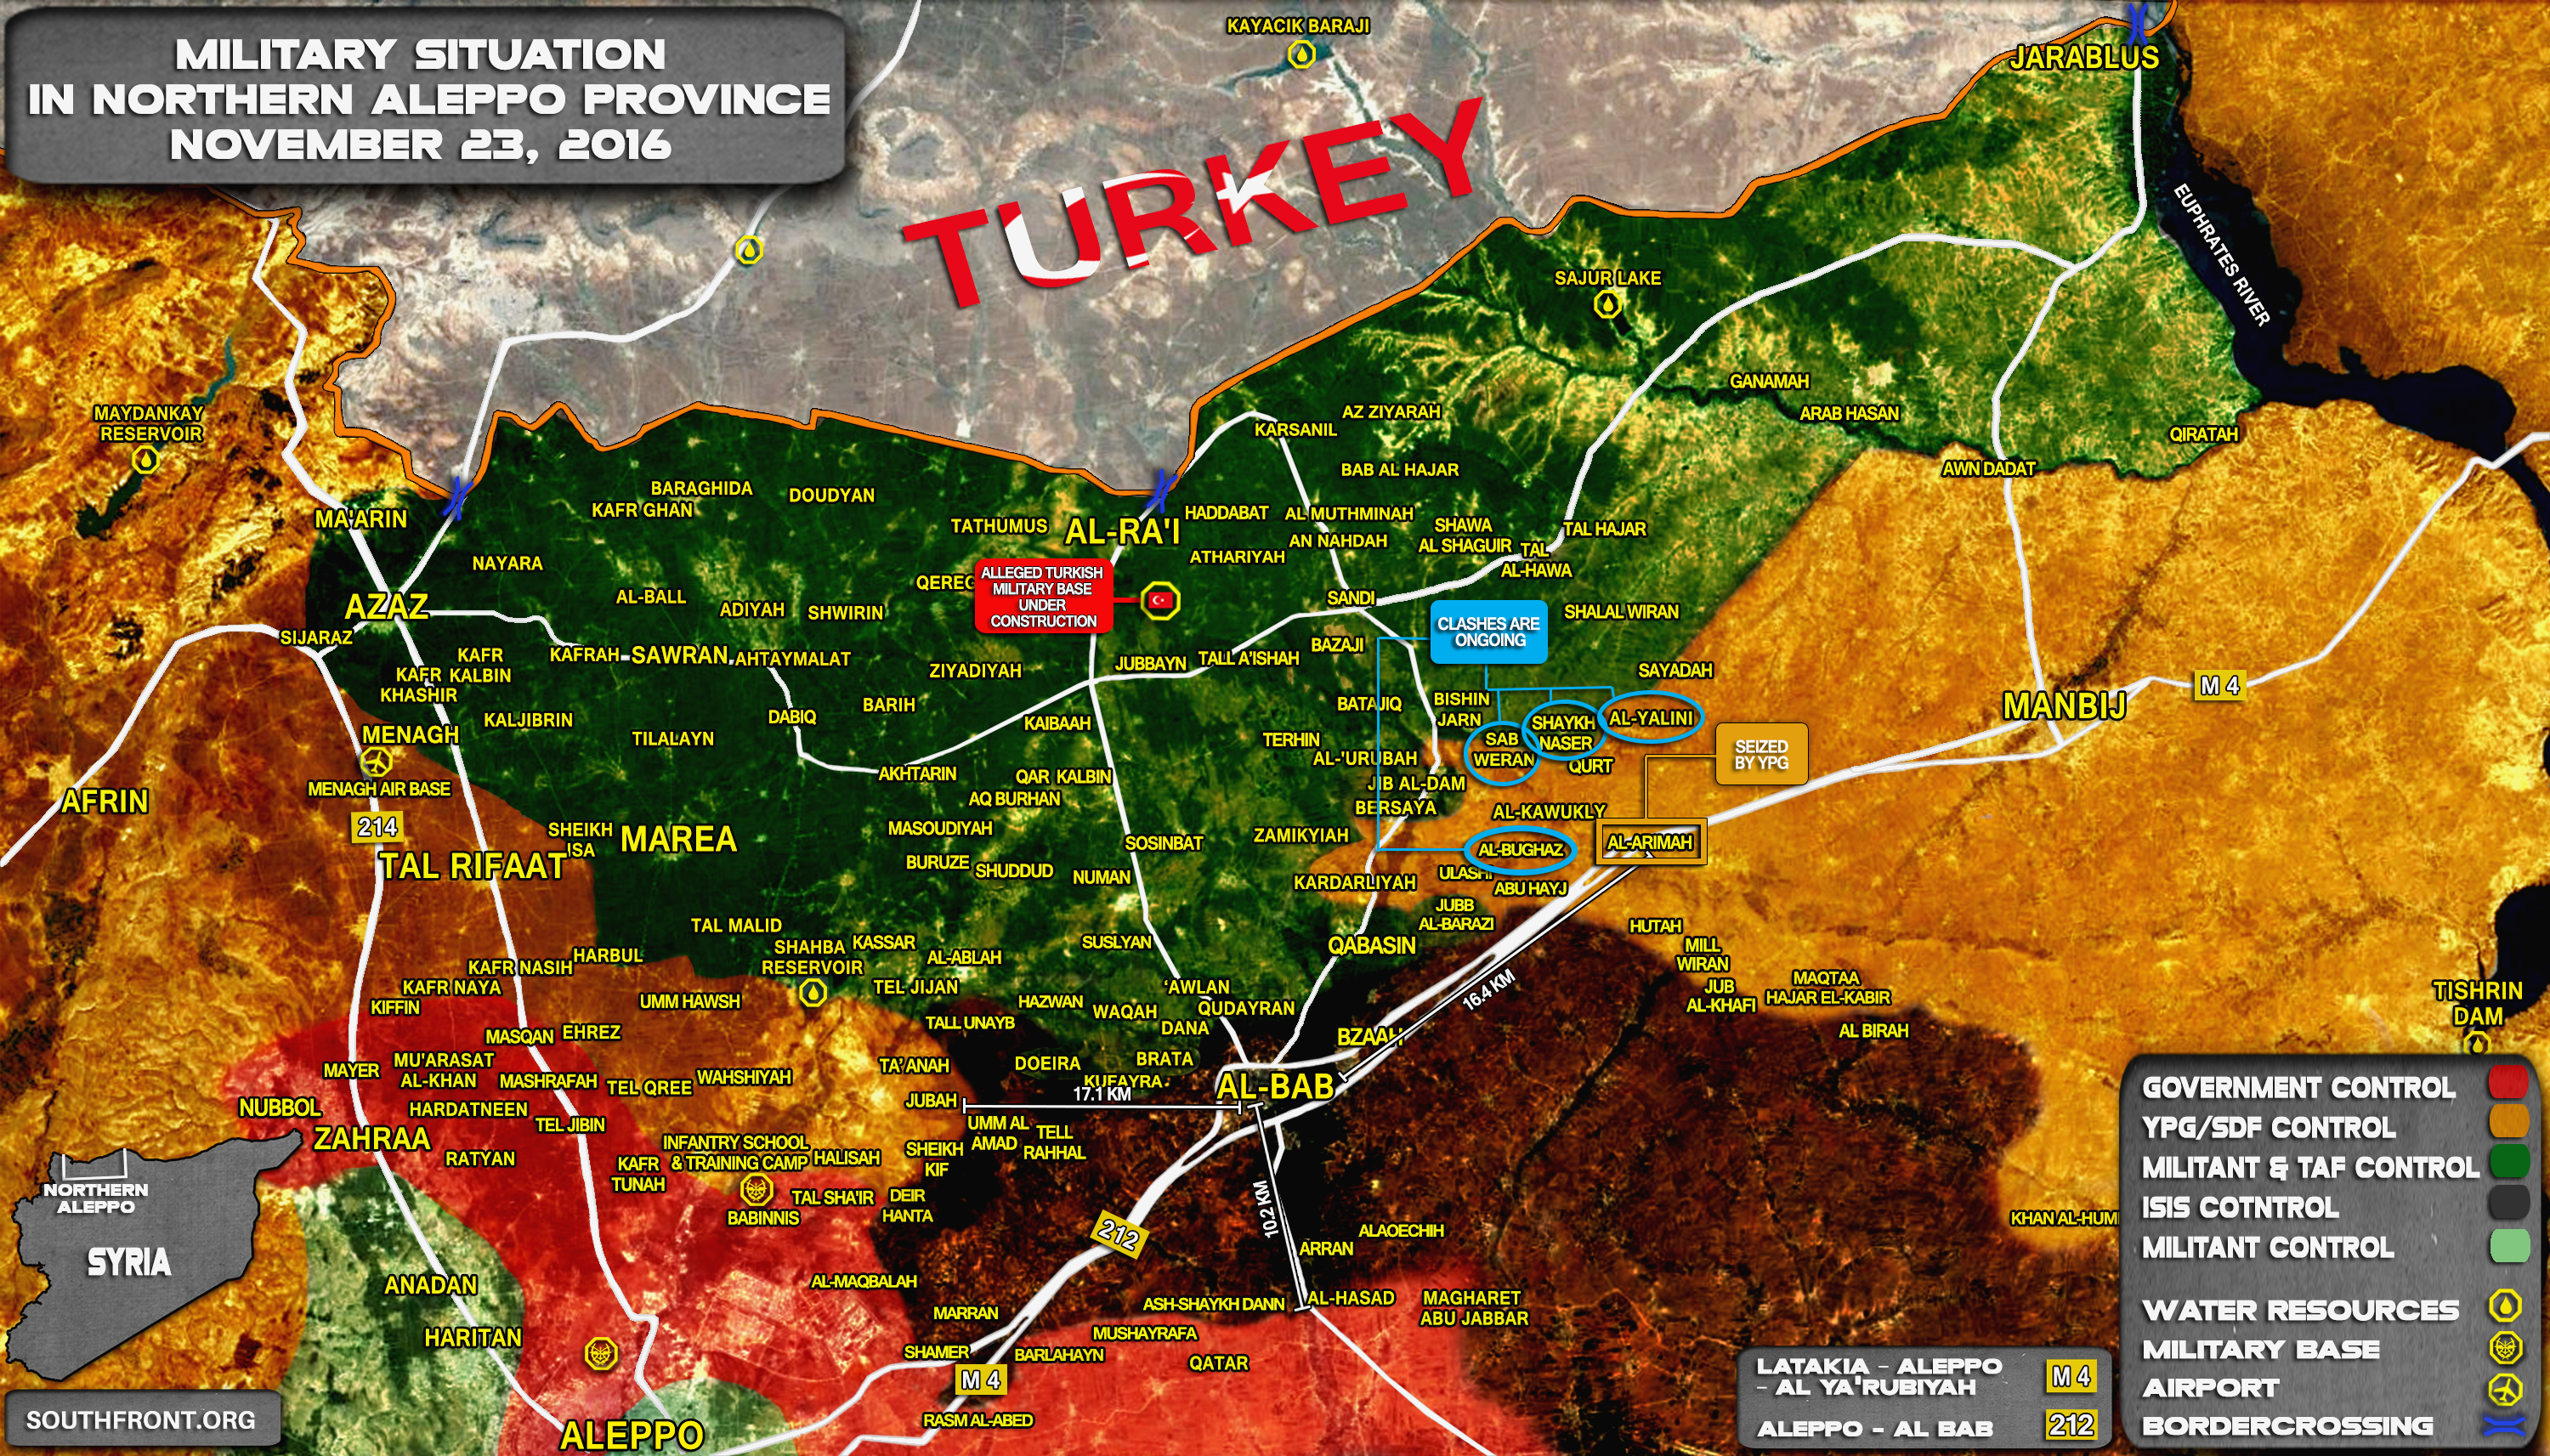 Intense Fighting between Turkey-led Forces and Kurdish YPG in Northern Aleppo